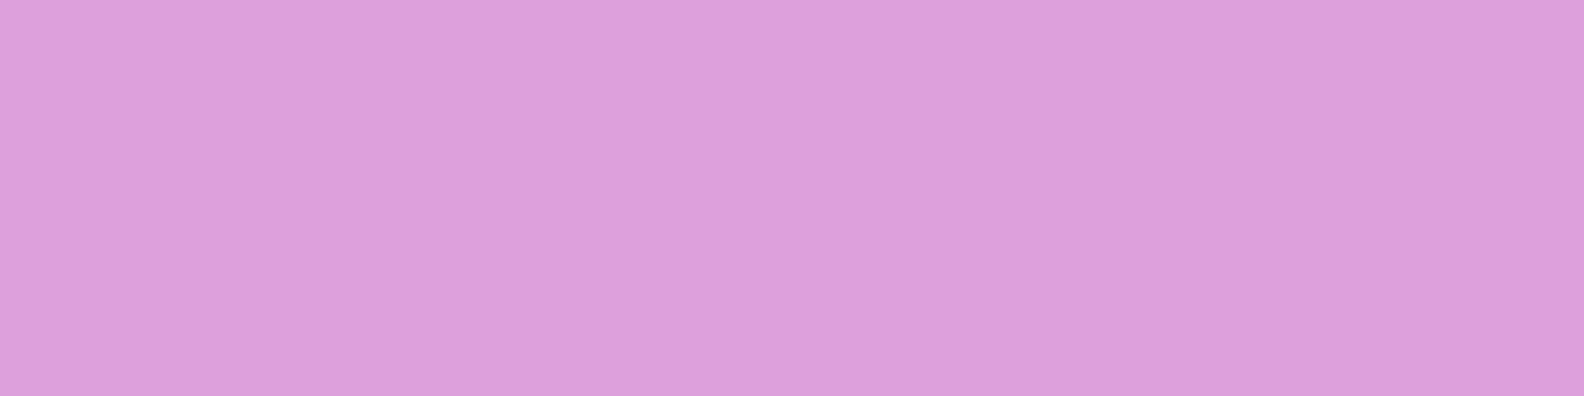 1584x396 Pale Plum Solid Color Background